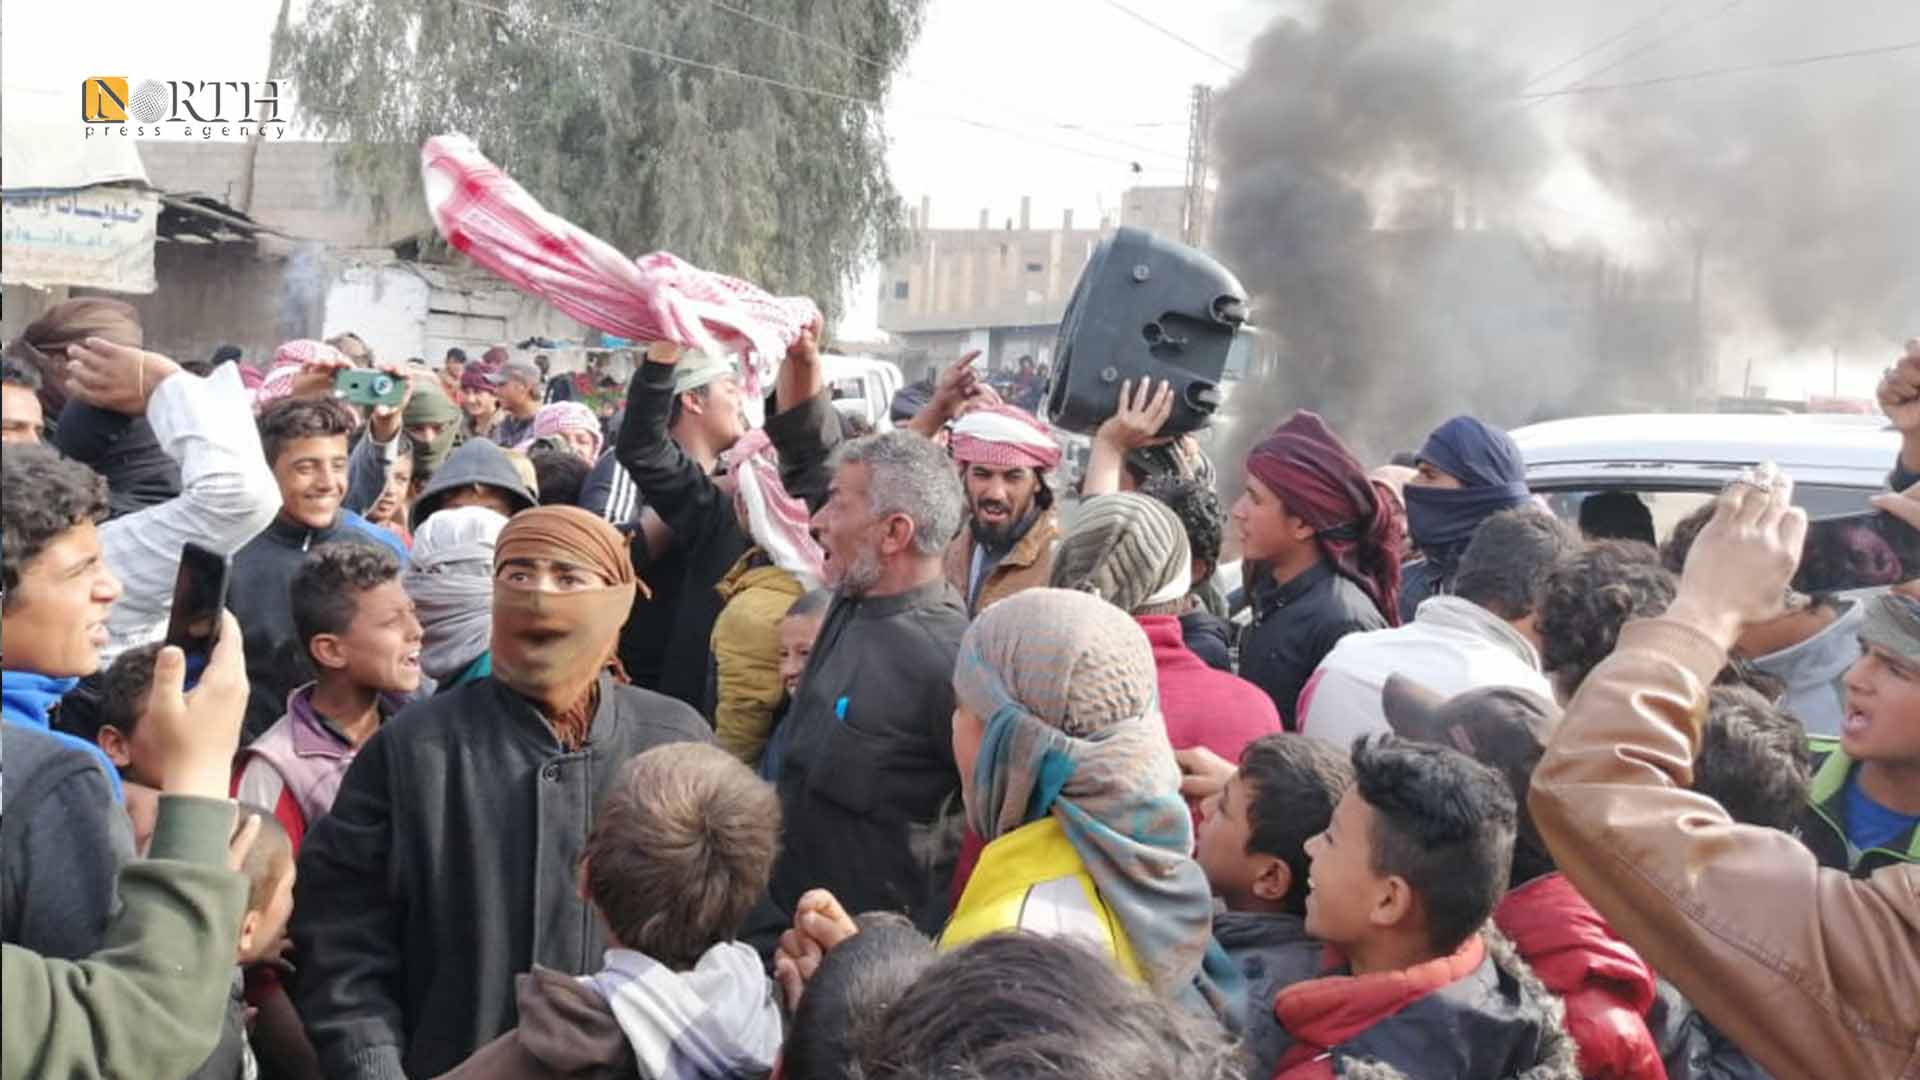 A protest in the town of Abu Hamam, east of Deir ez-Zor